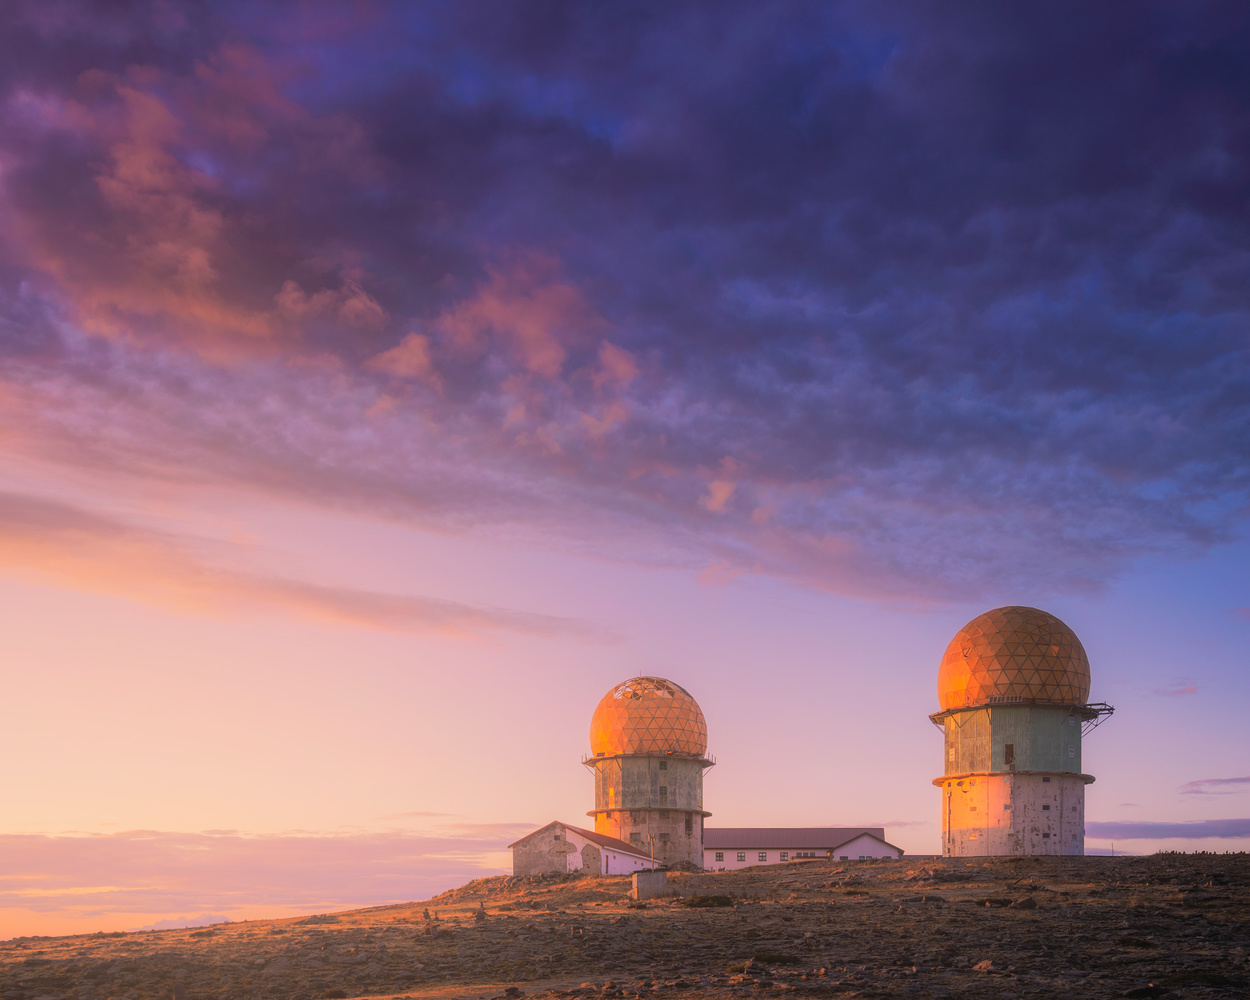 Towers looking for the sun by Tiago Ferreira